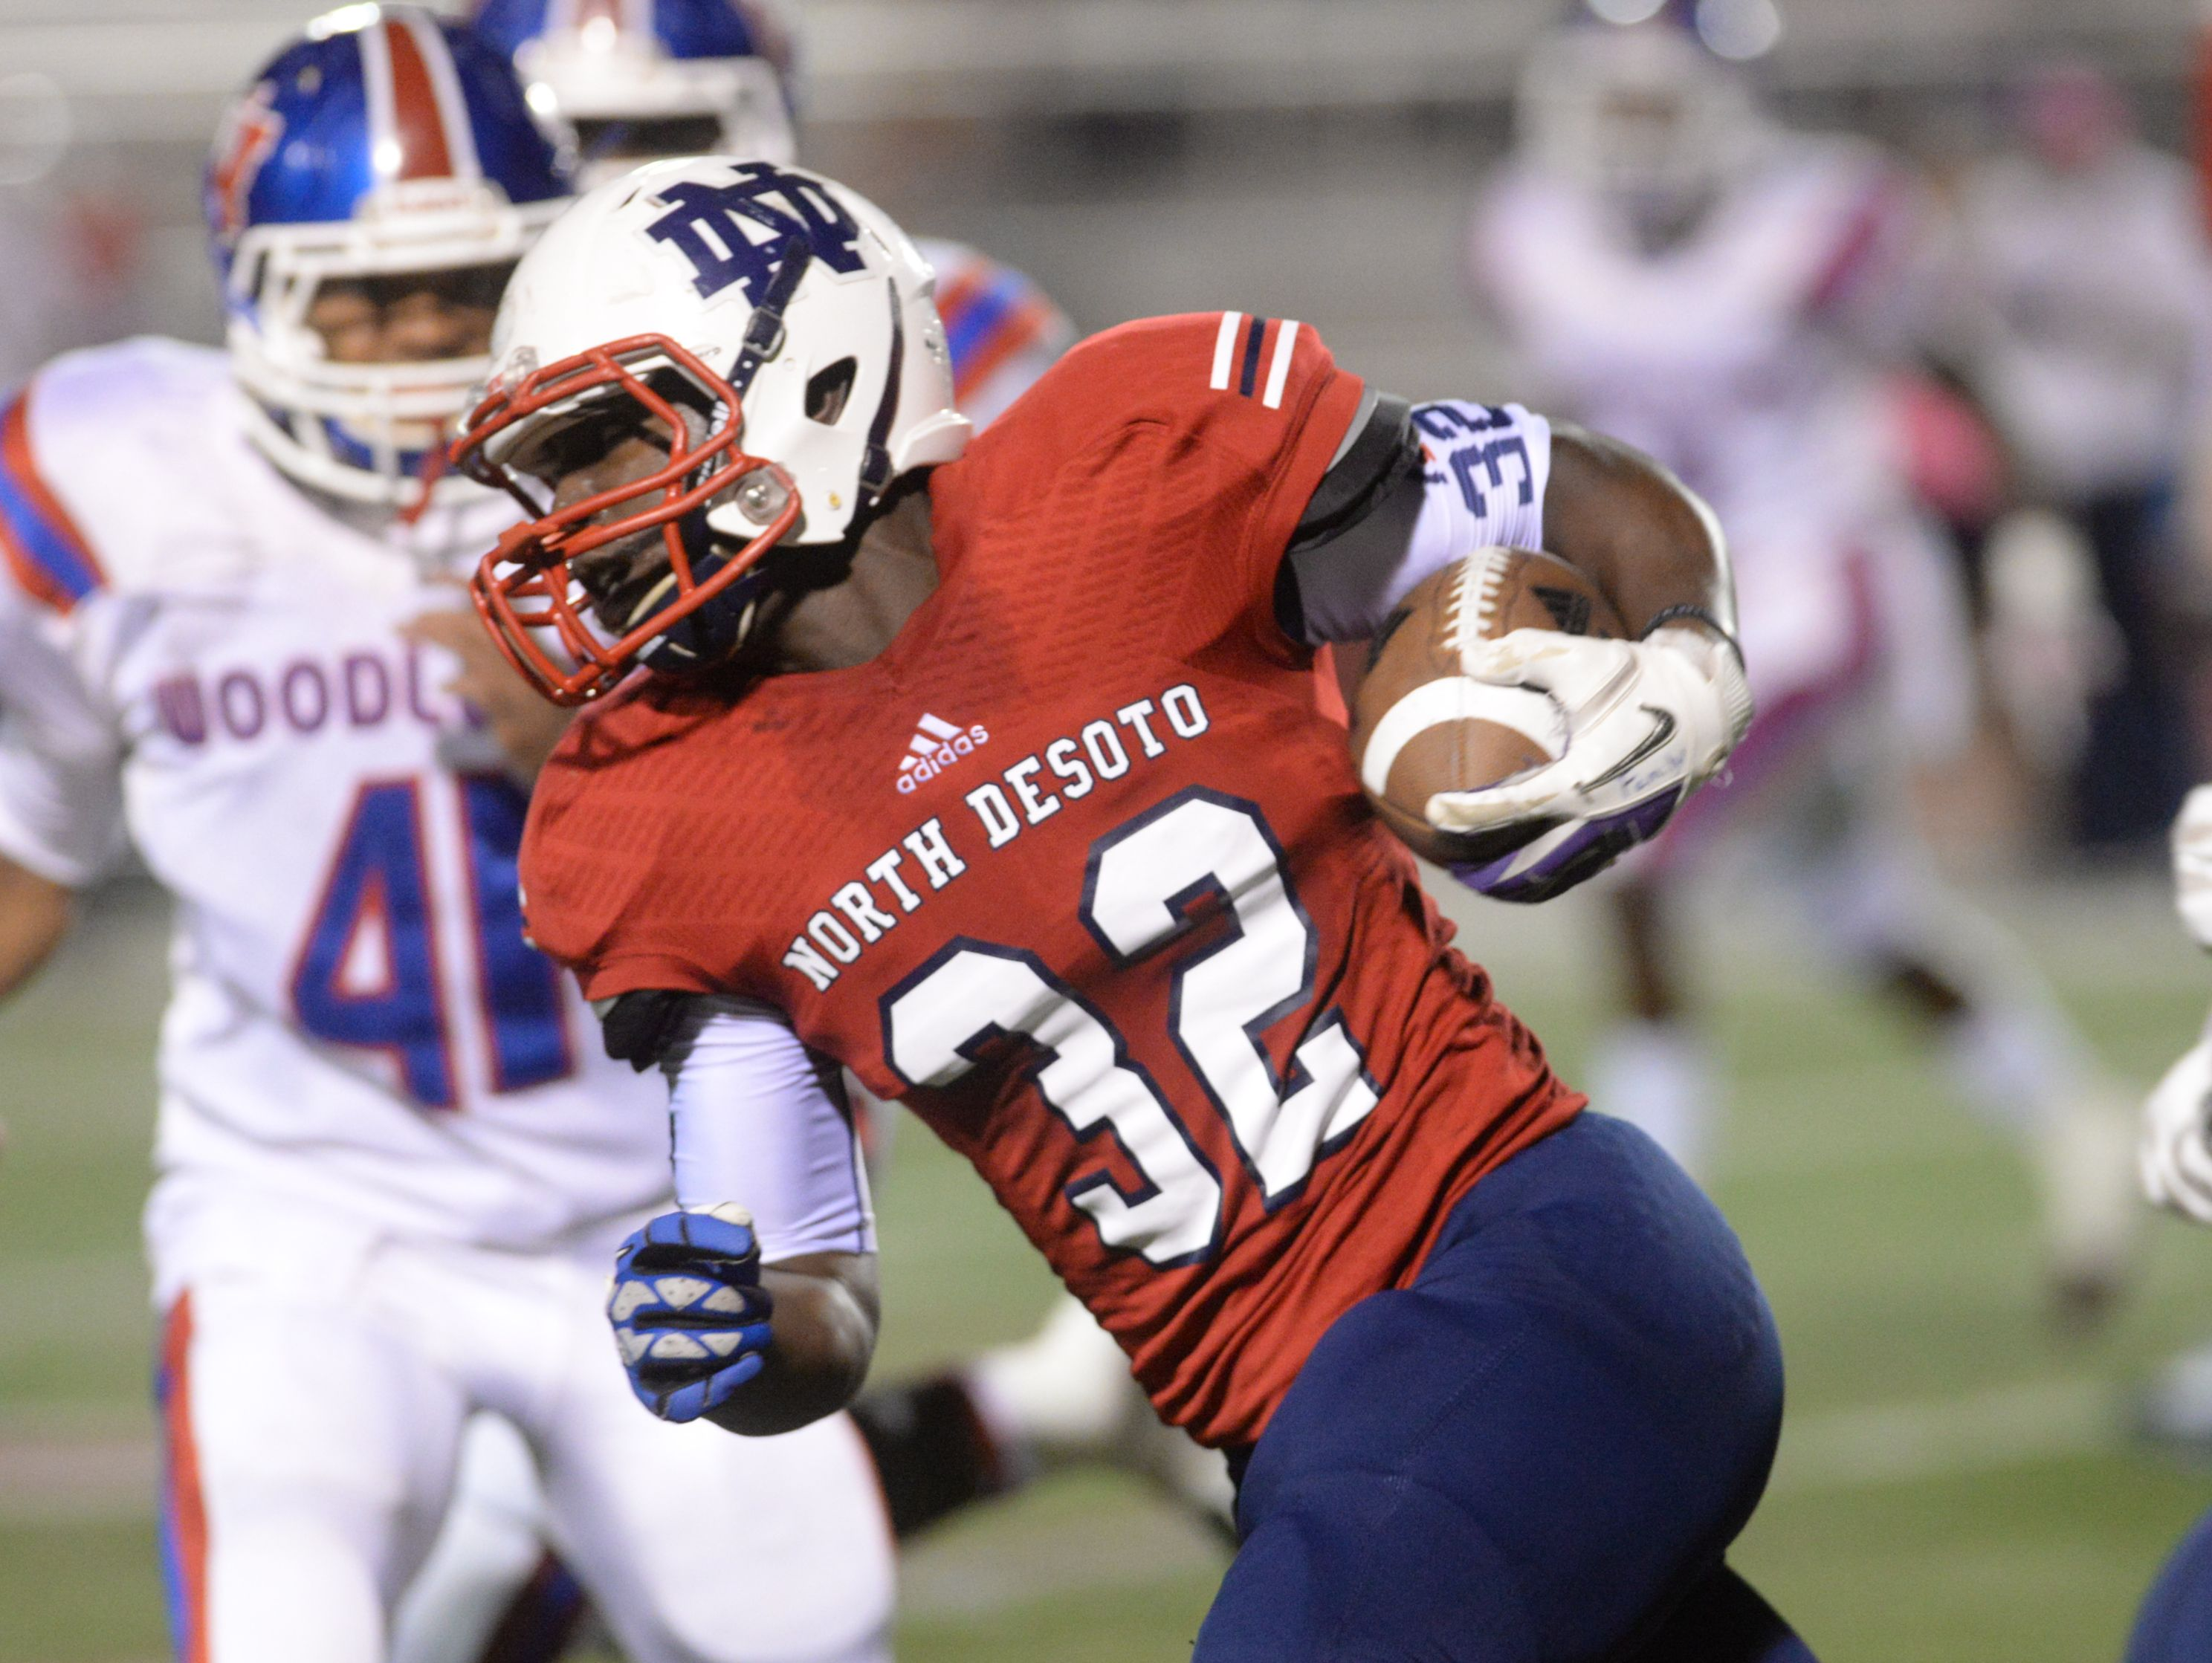 North DeSoto's Delmonte Hall scored eight touchdowns against Huntington to tie a state record.